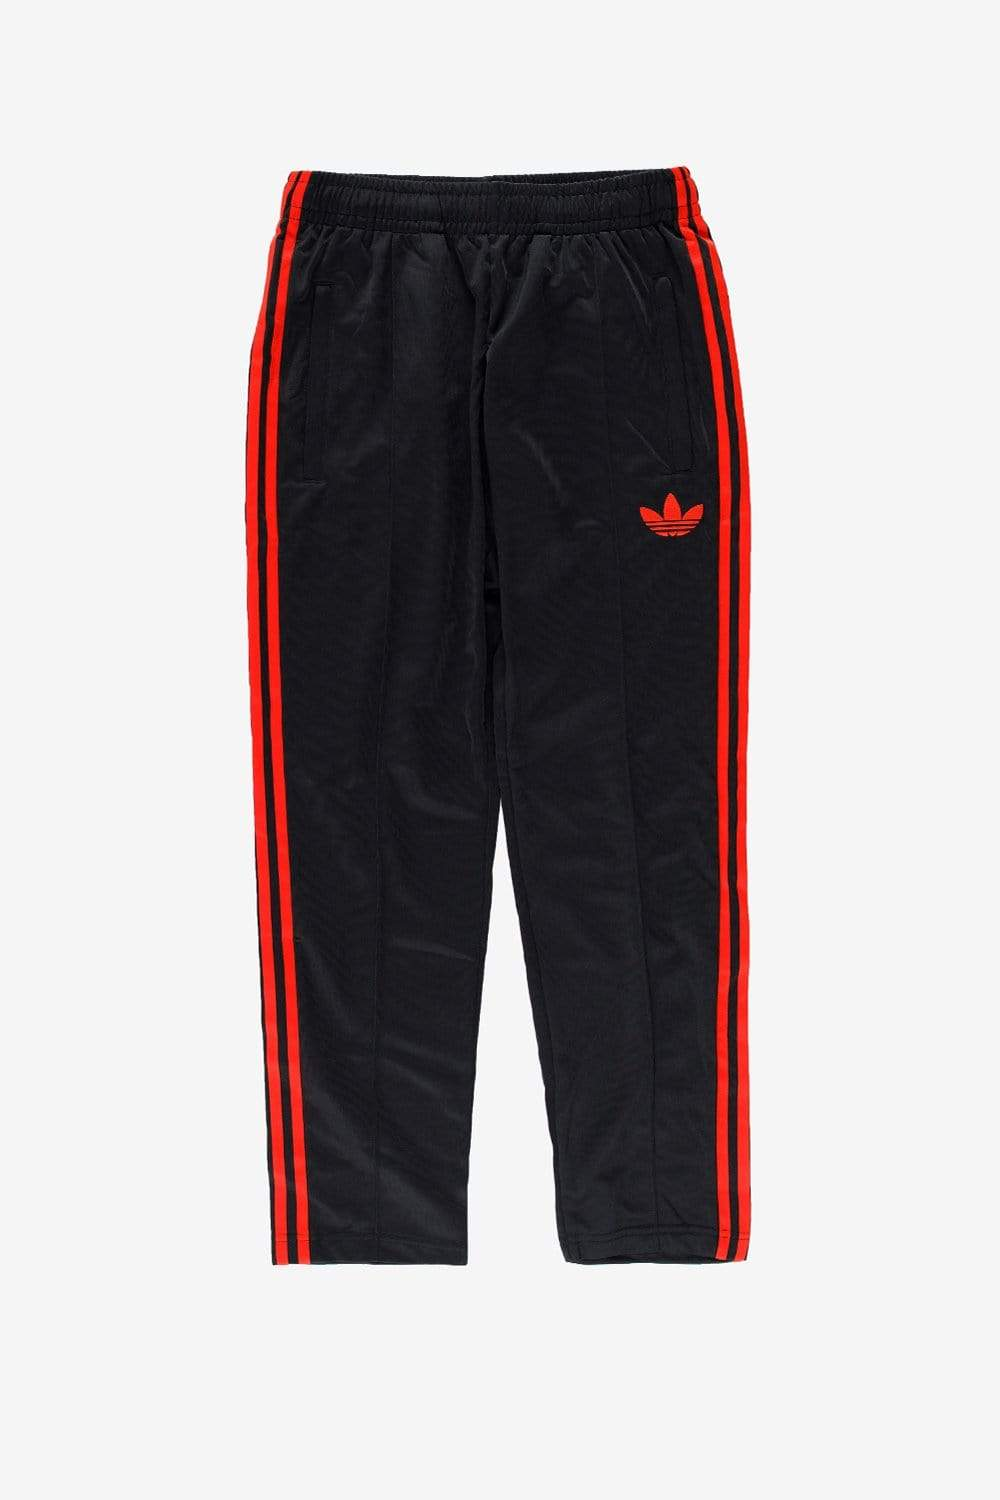 adidas Apparel SST OG Track Pants